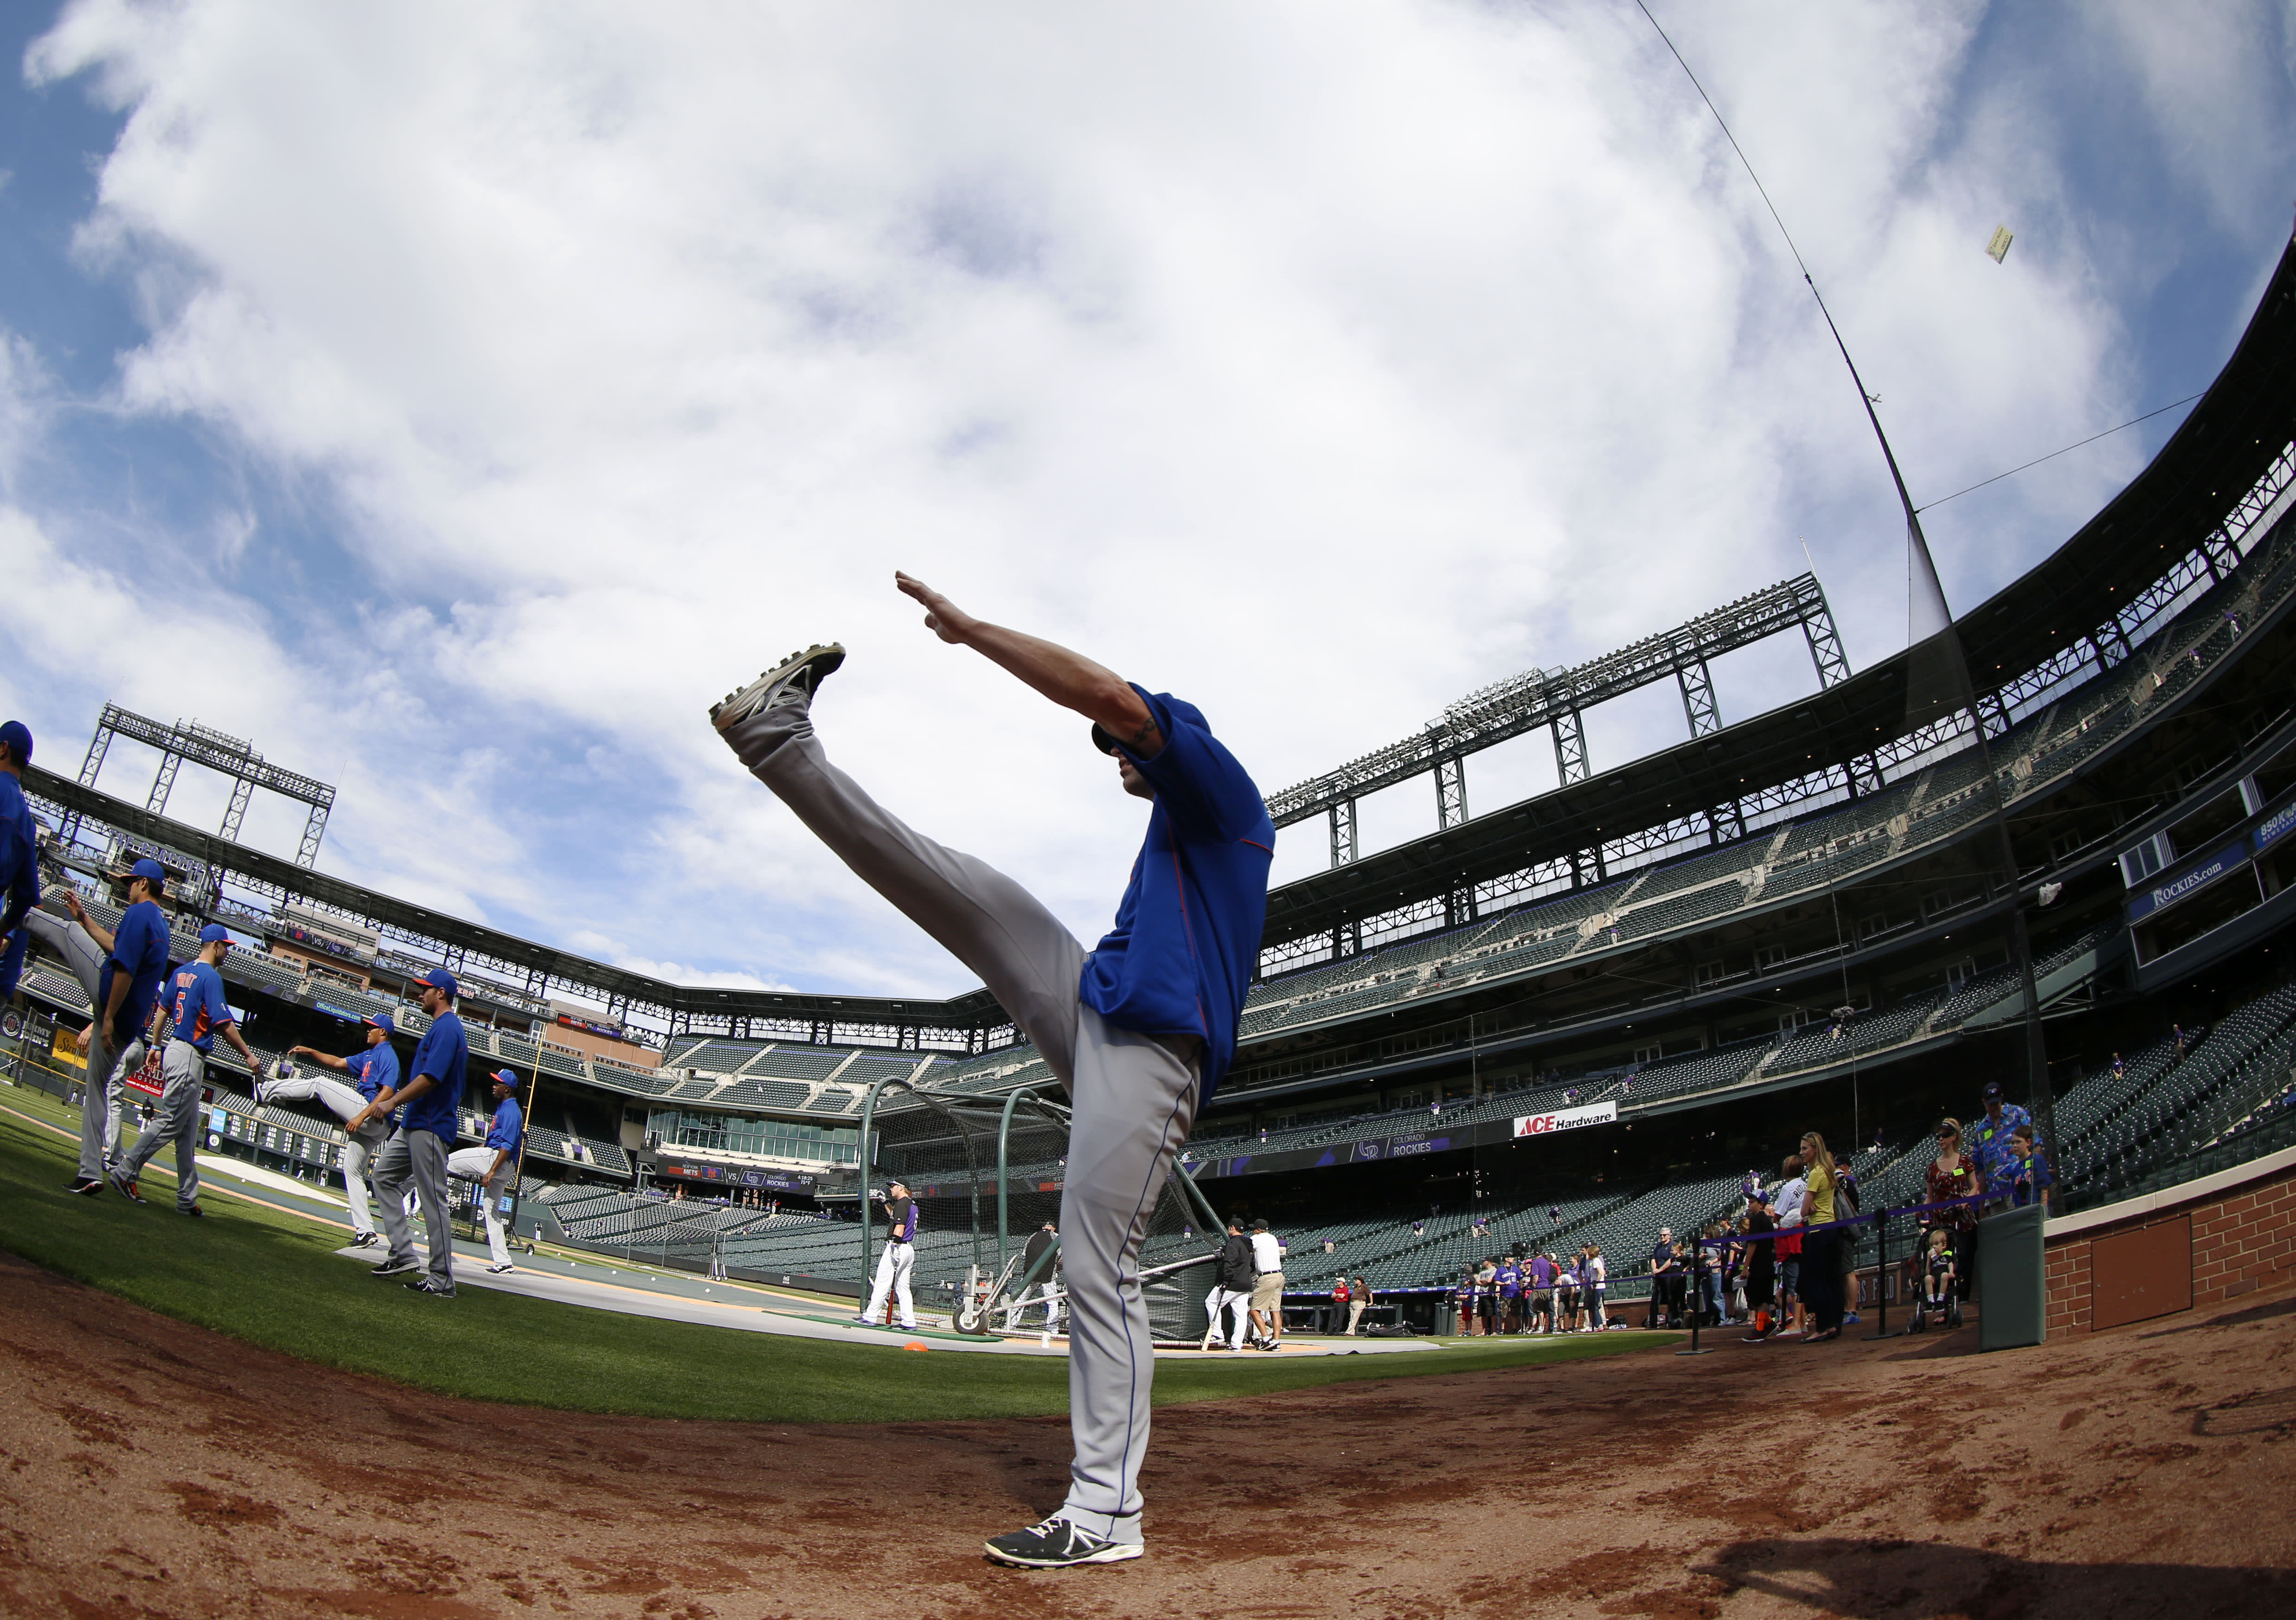 With the help of a fisheye lens, New York Mets pitcher Kyle Farnsworth stretches before facing the Colorado Rockies in the first inning of a baseball game in Denver on Saturday, May 3, 2014. (AP Photo/David Zalubowski)